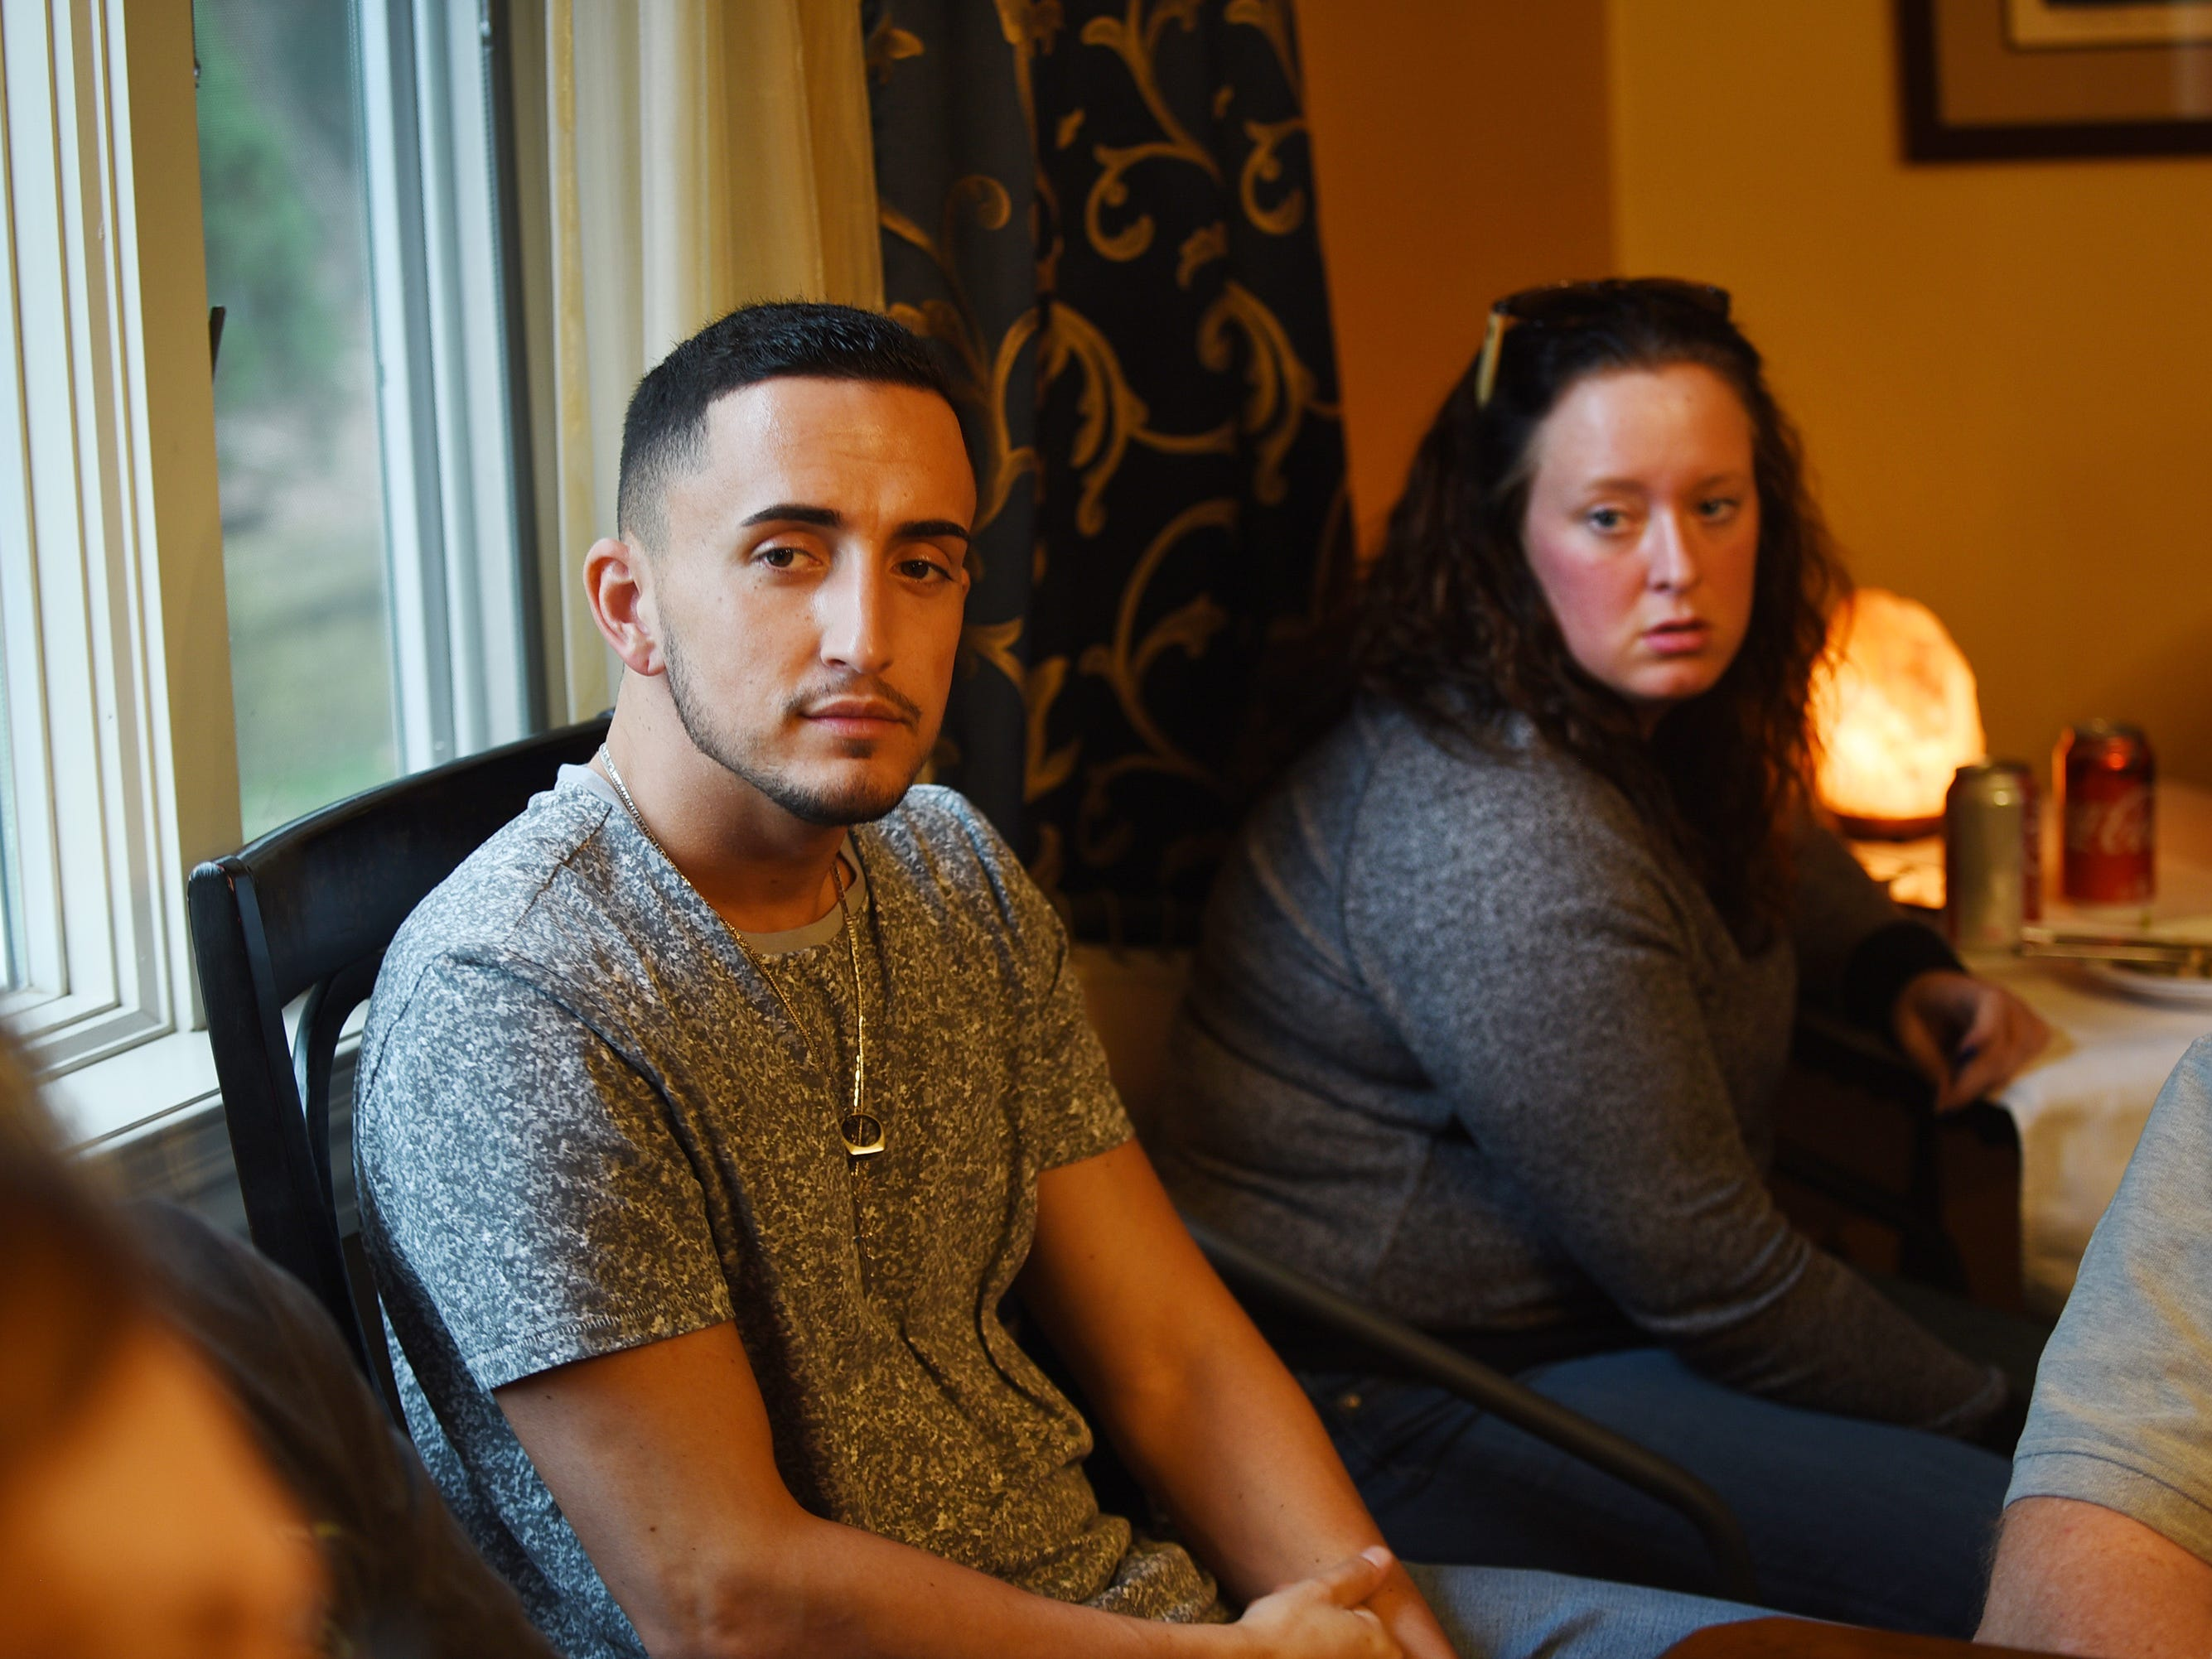 Joseph DeGregorio of Nutley (age 25) who is recovering from drug and alcohol addiction, and Erin Conaughton (age 28) of Teaneck who is recovering from drug addiction, listens as Nancy Labov, the Founder and Director of AIR(Alumni in Recovery), speaks to its members, family members of those who died from addiction,and volunteers, during their annual community meeting in Old Tappan on 04/14/19.